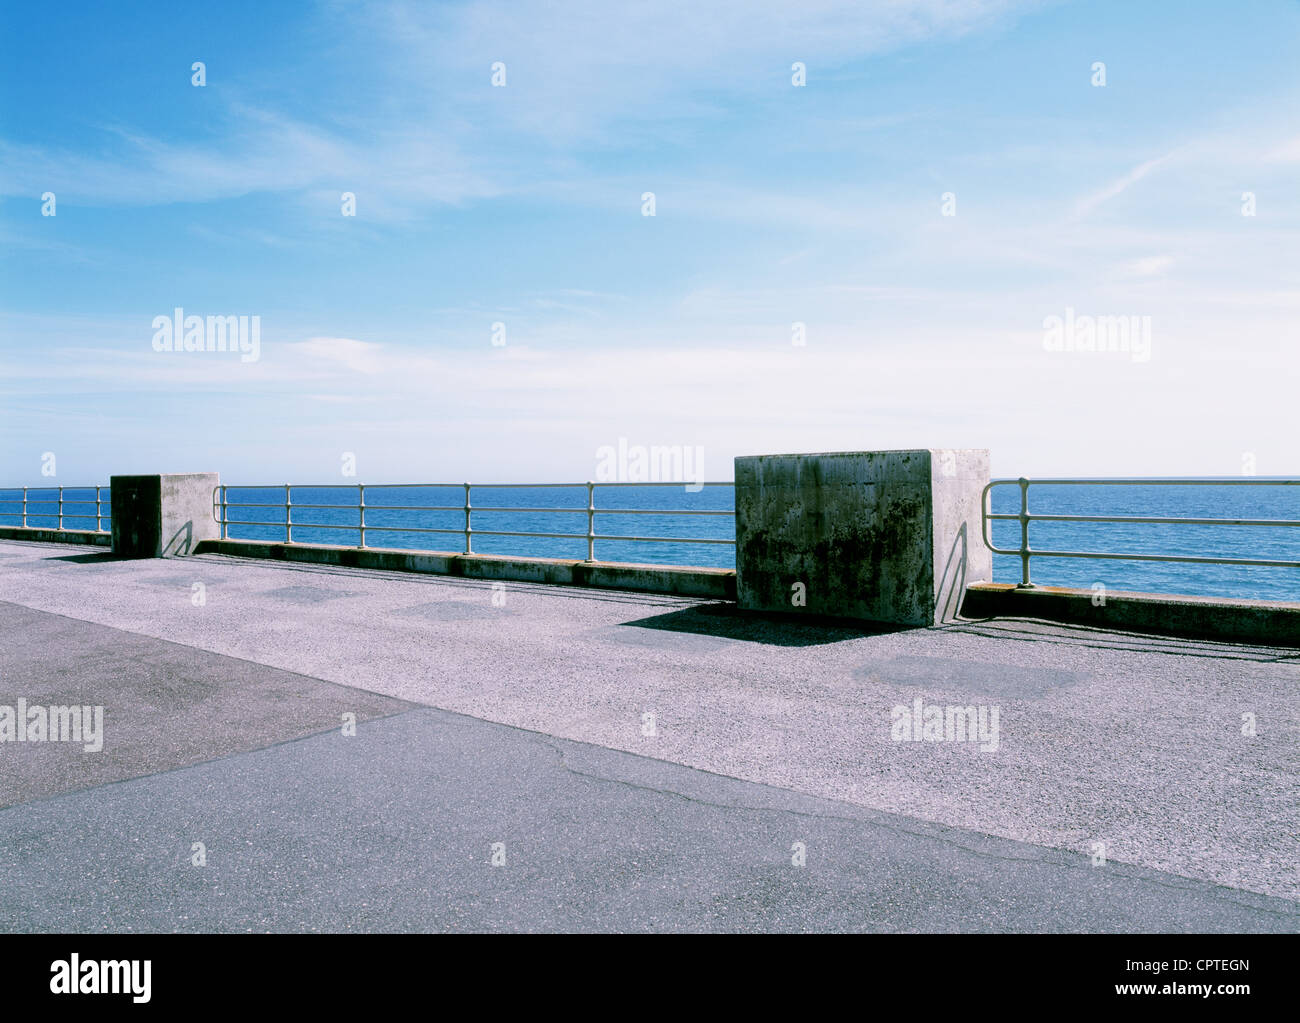 Sea and promenade, Seaford, East Sussex, England, UK - Stock Image